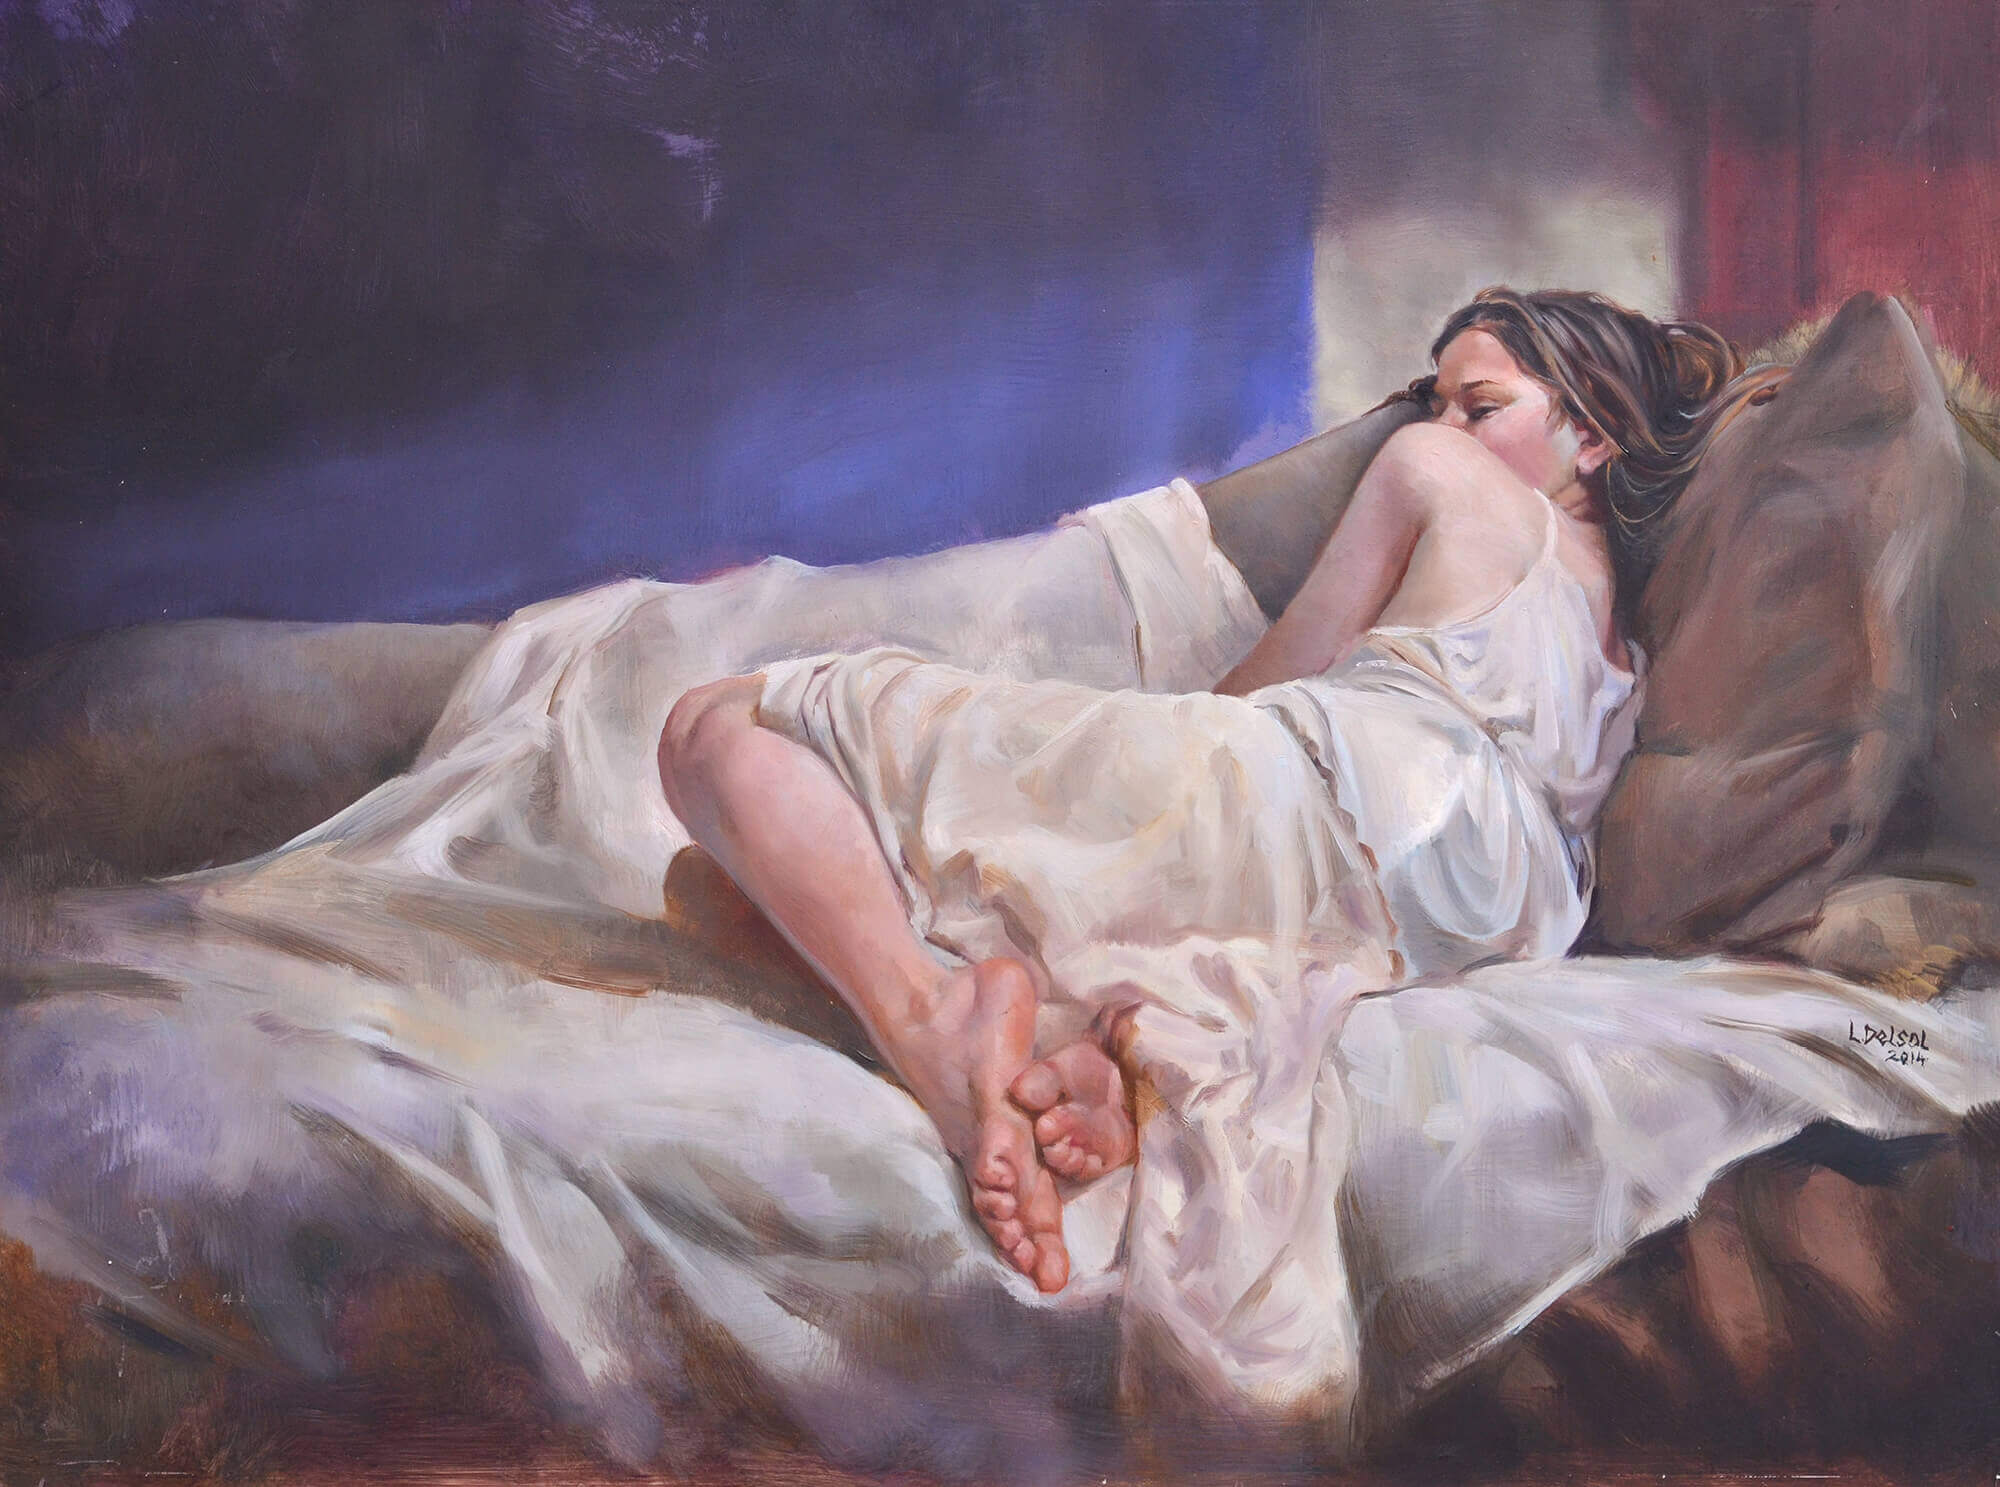 Figurative oil painting of a woman in a white slip laying on a fainting couch with her back to the viewer with a purple wall and red door